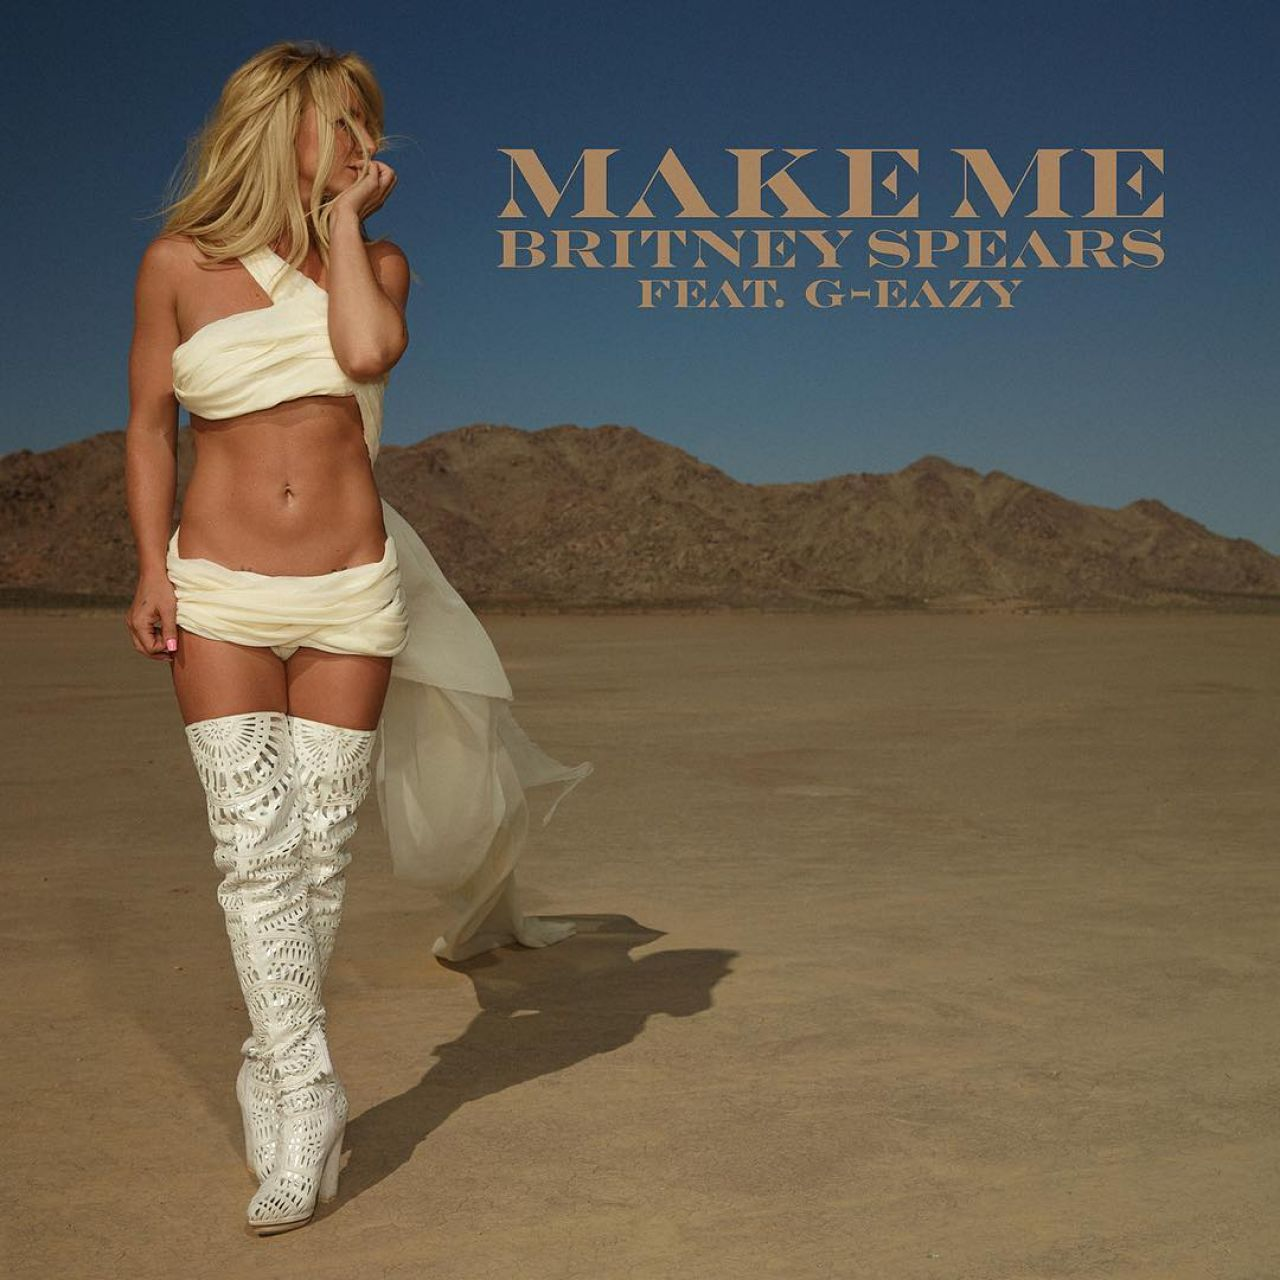 britney-spears-make-me-single-cover-and-